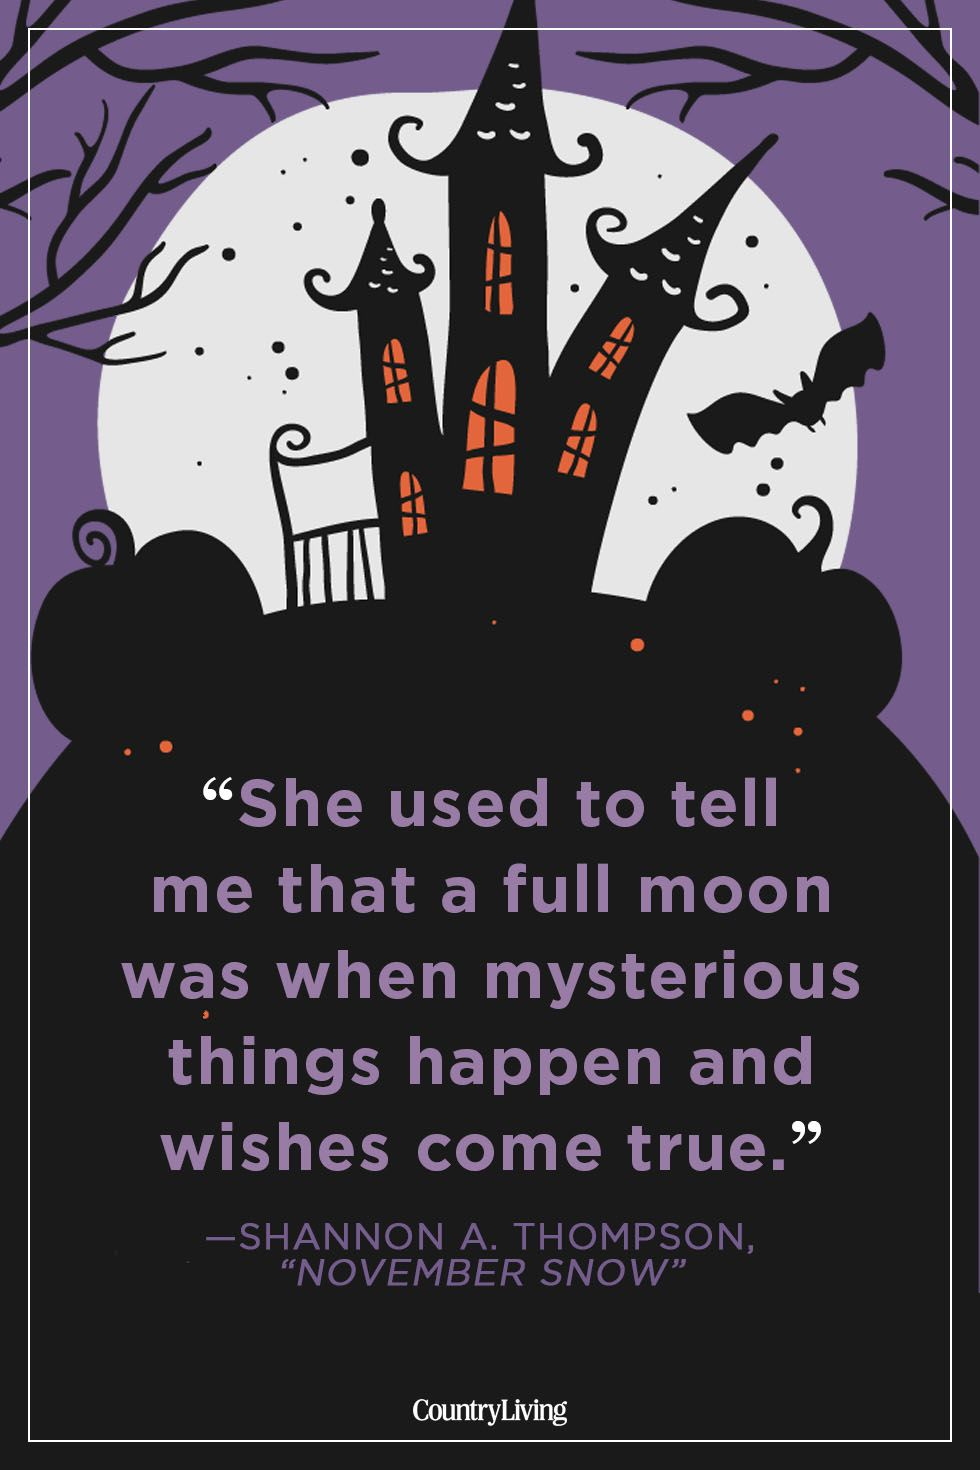 30 Happy Halloween Quotes - Best Spooky Halloween Quotes and Sayings